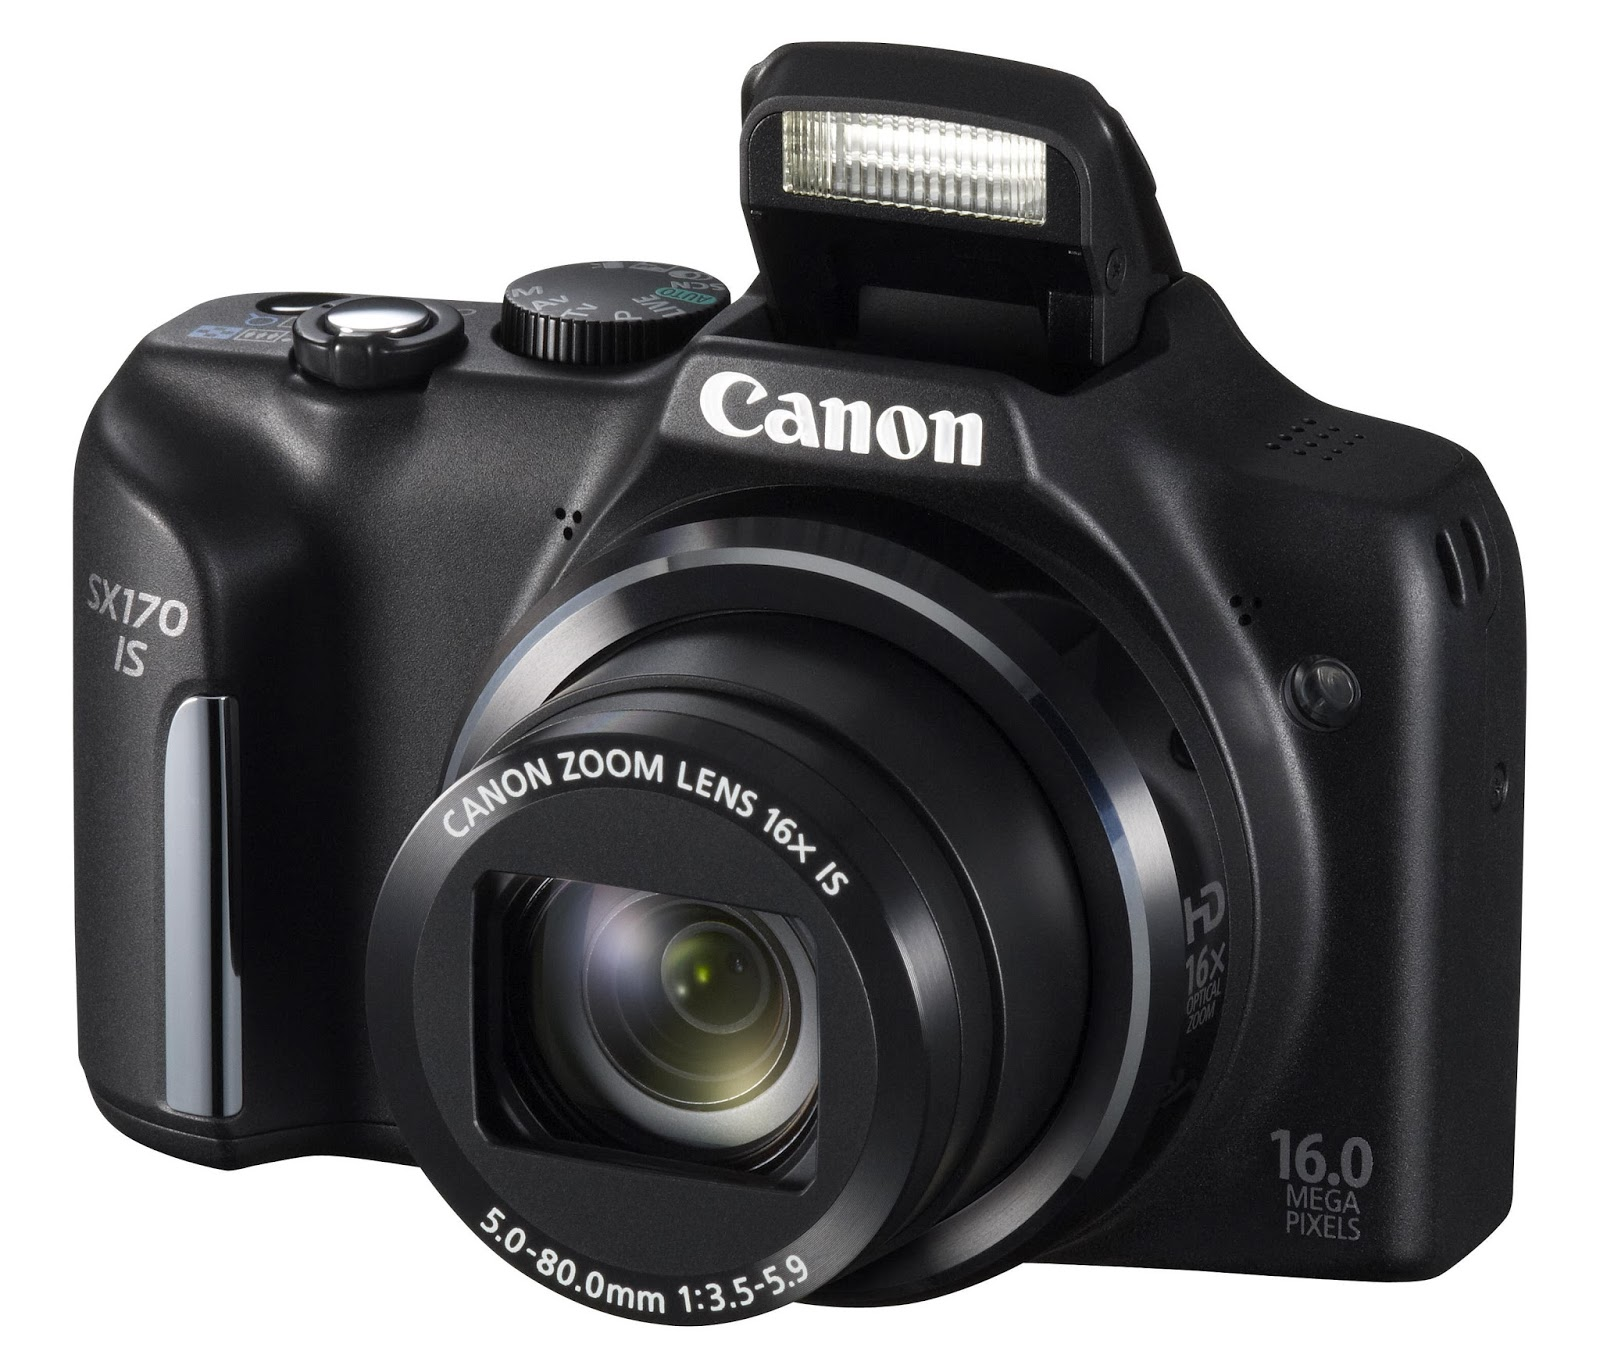 Canon Camera News 2021 Canon Powershot Sx170 Hs Digital Camera